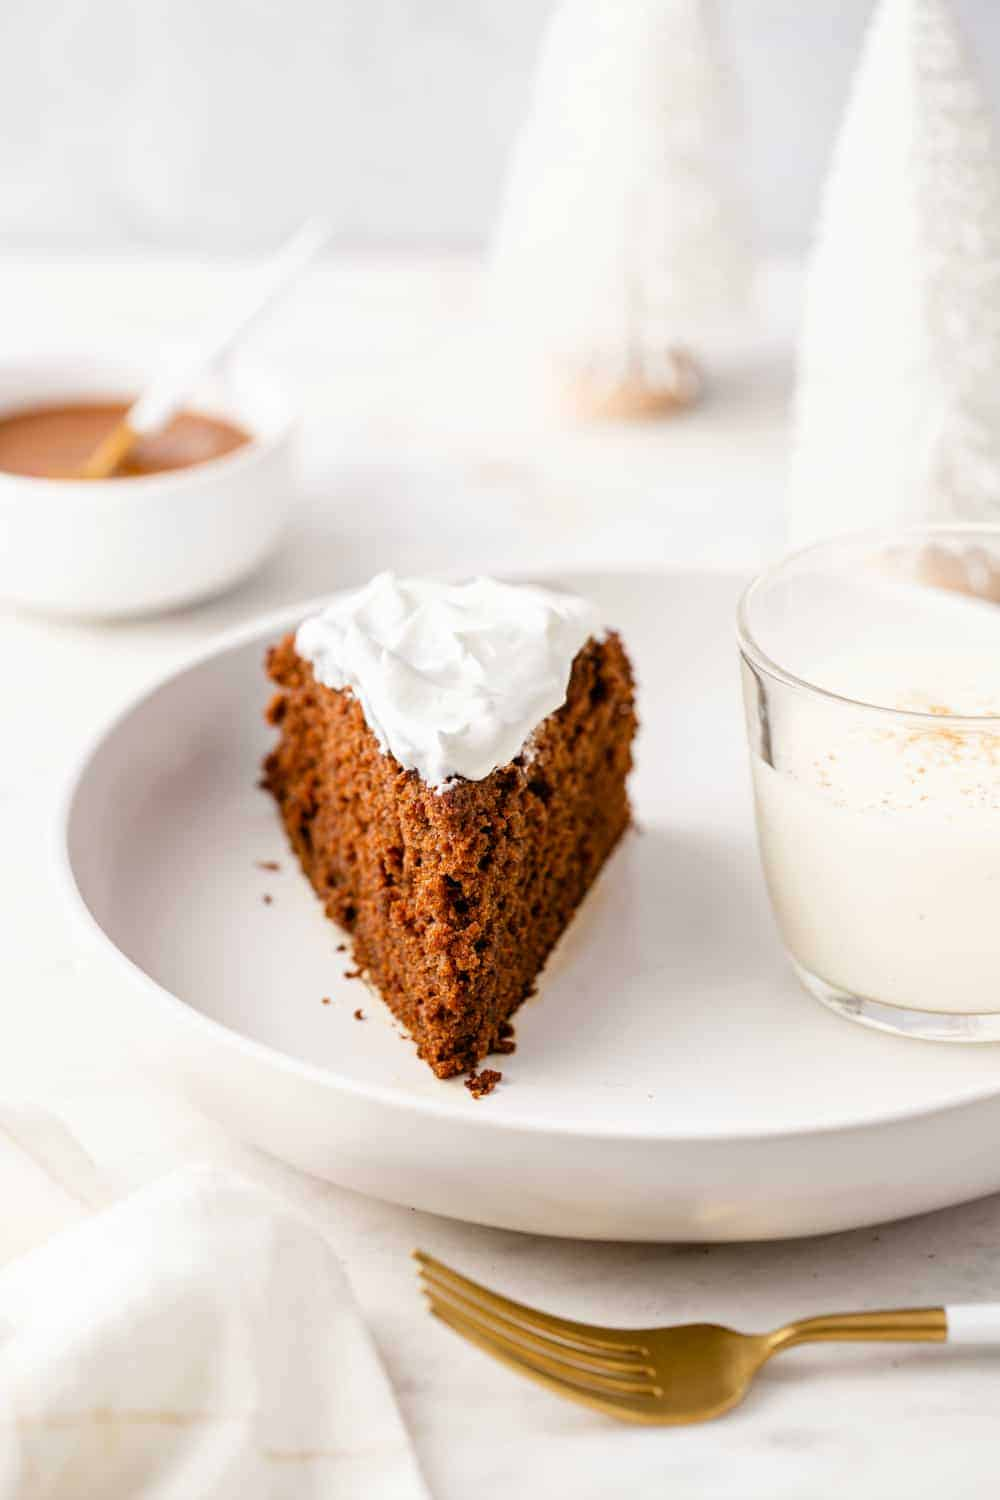 Glass of eggnog and a slice of gingerbread caked topped with whipped cream on a white plate